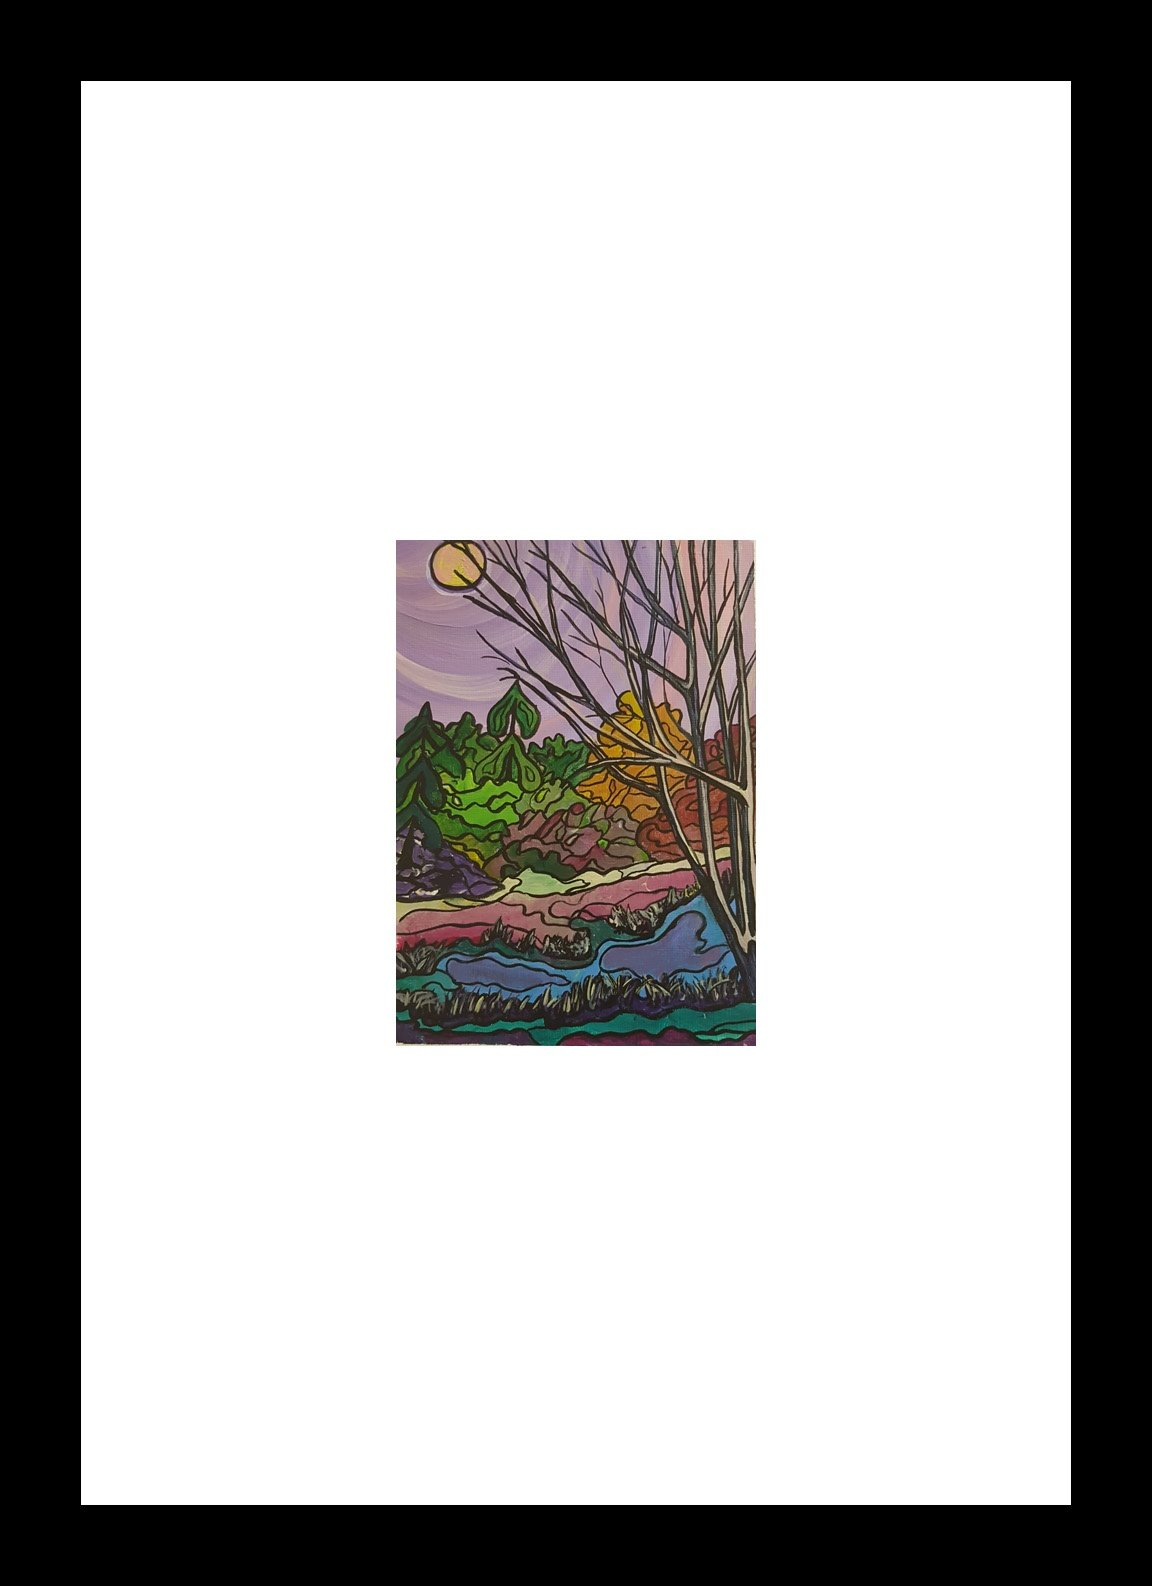 """Duck Pond"" [2018] Image: 5"" x 7"". Framed: 10"" x 16"" Acrylic on 246 lb. paper $200.00"